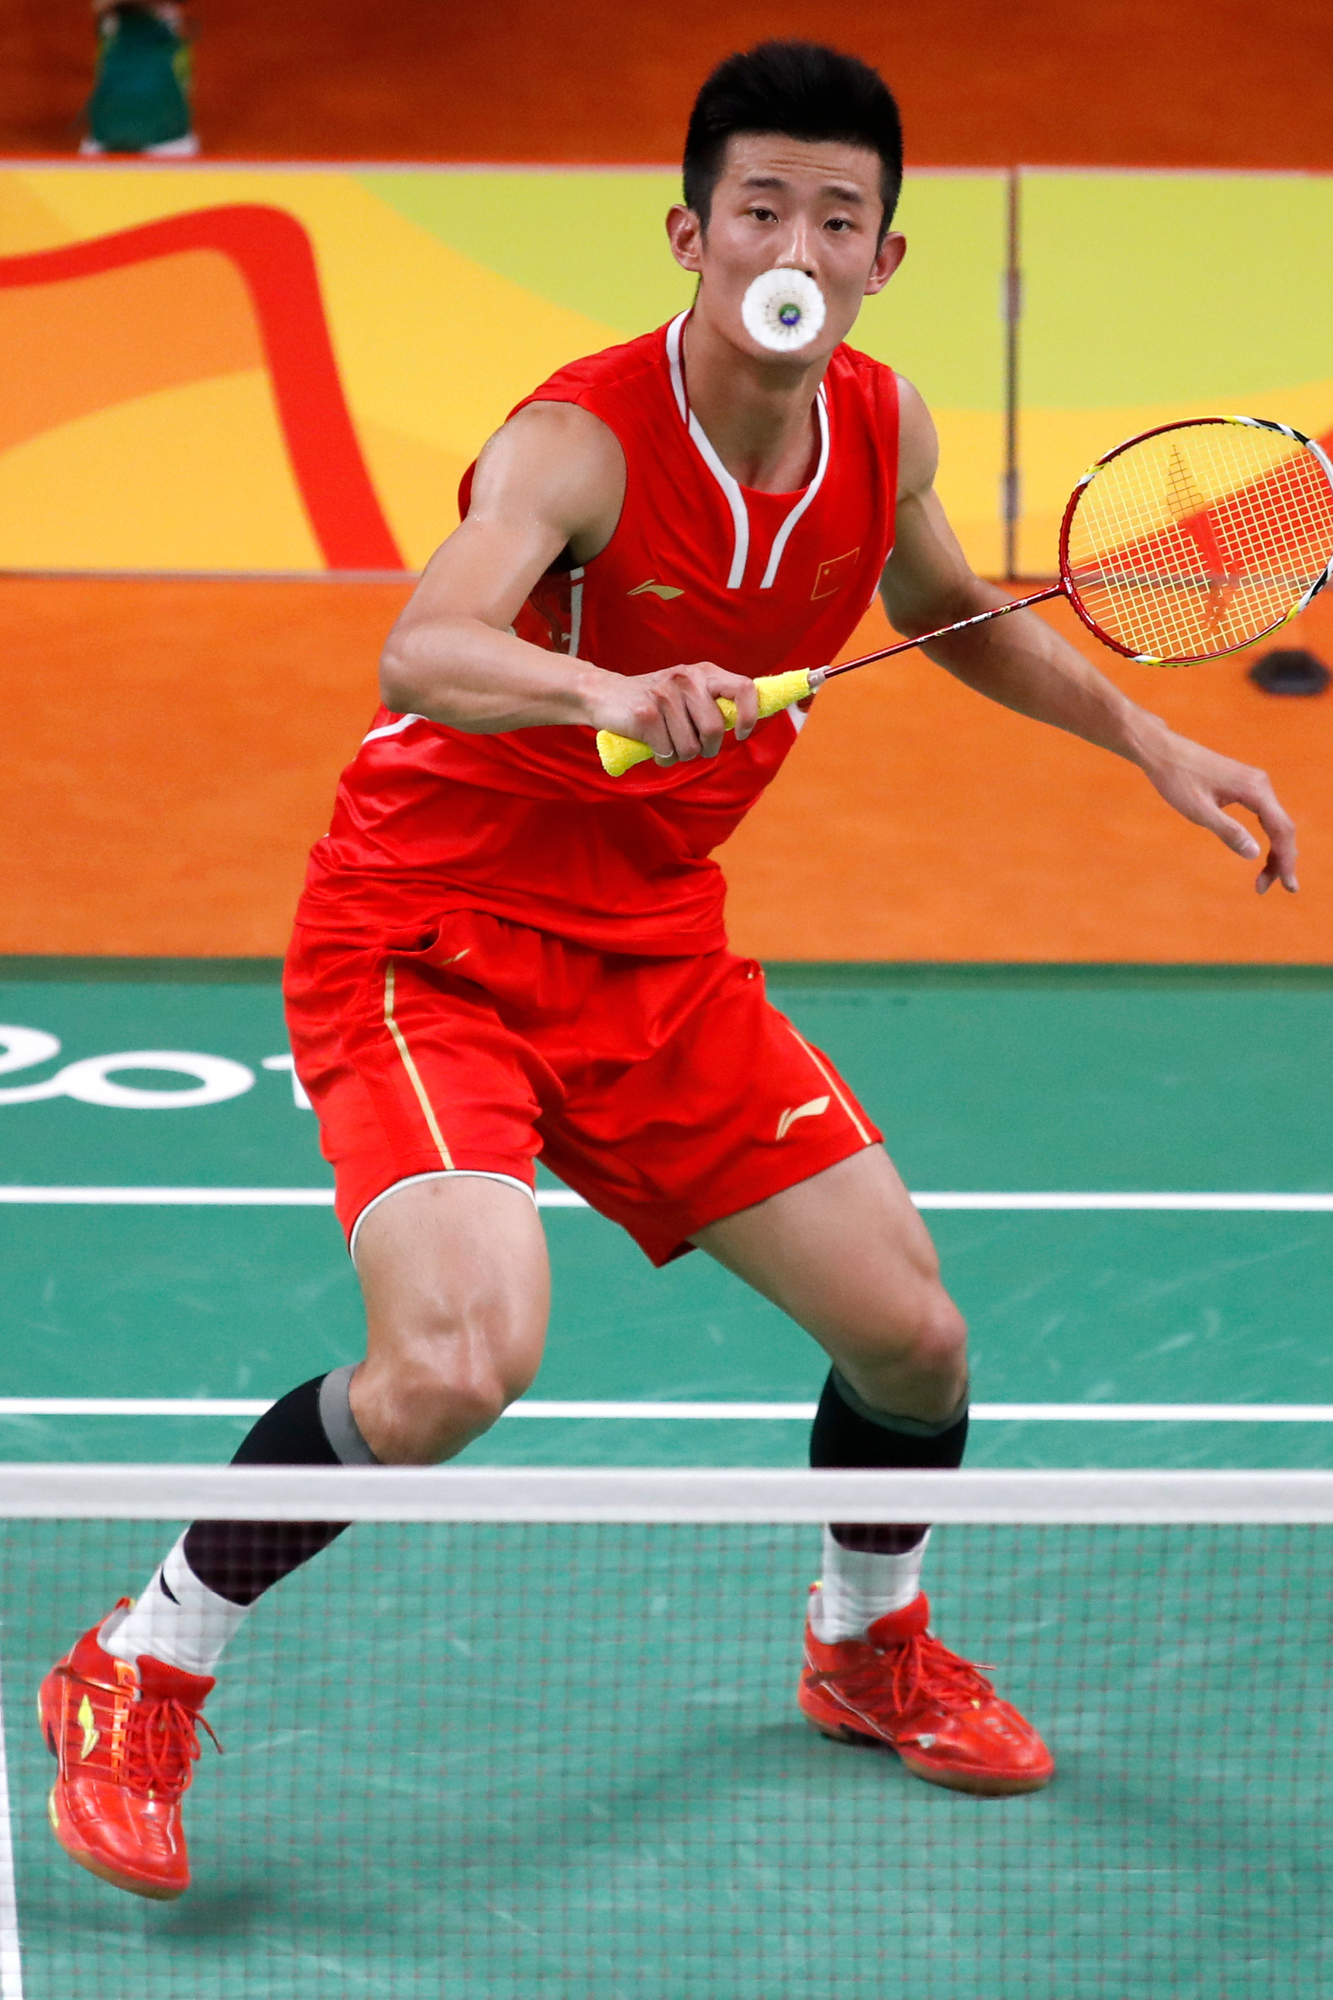 China's Long Chen takes on Malaysia's Chong Wei Lee (not pictured) in the Men's Badminton Singles gold medal match at the 2016 Rio Summer Olympics in Rio de Janeiro, Brazil, on August 20, 2016. Chen defeated Lee to win the gold medal.